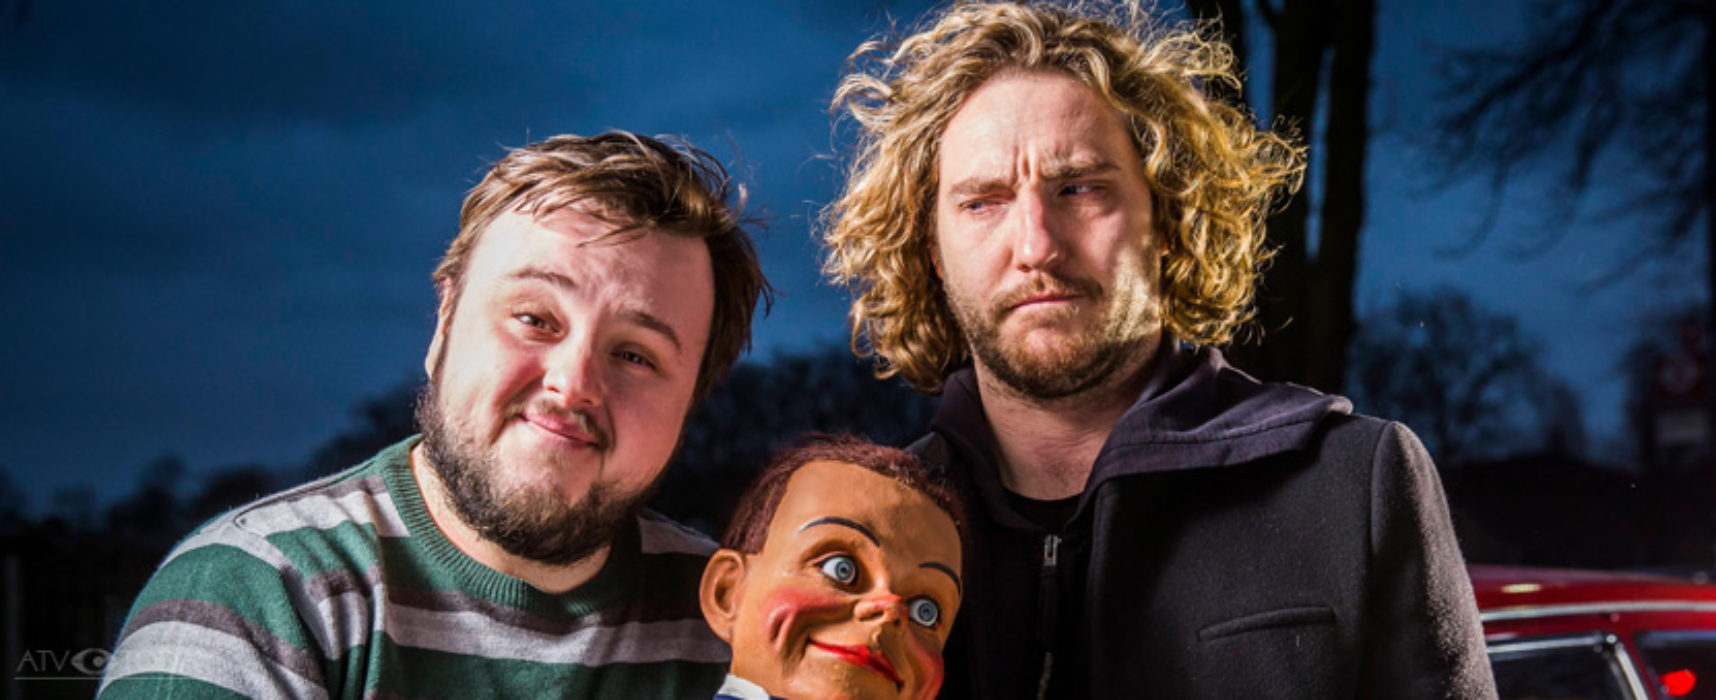 Game of Thrones' John Bradley and comedian Seann Walsh to star in new film 'Roger'